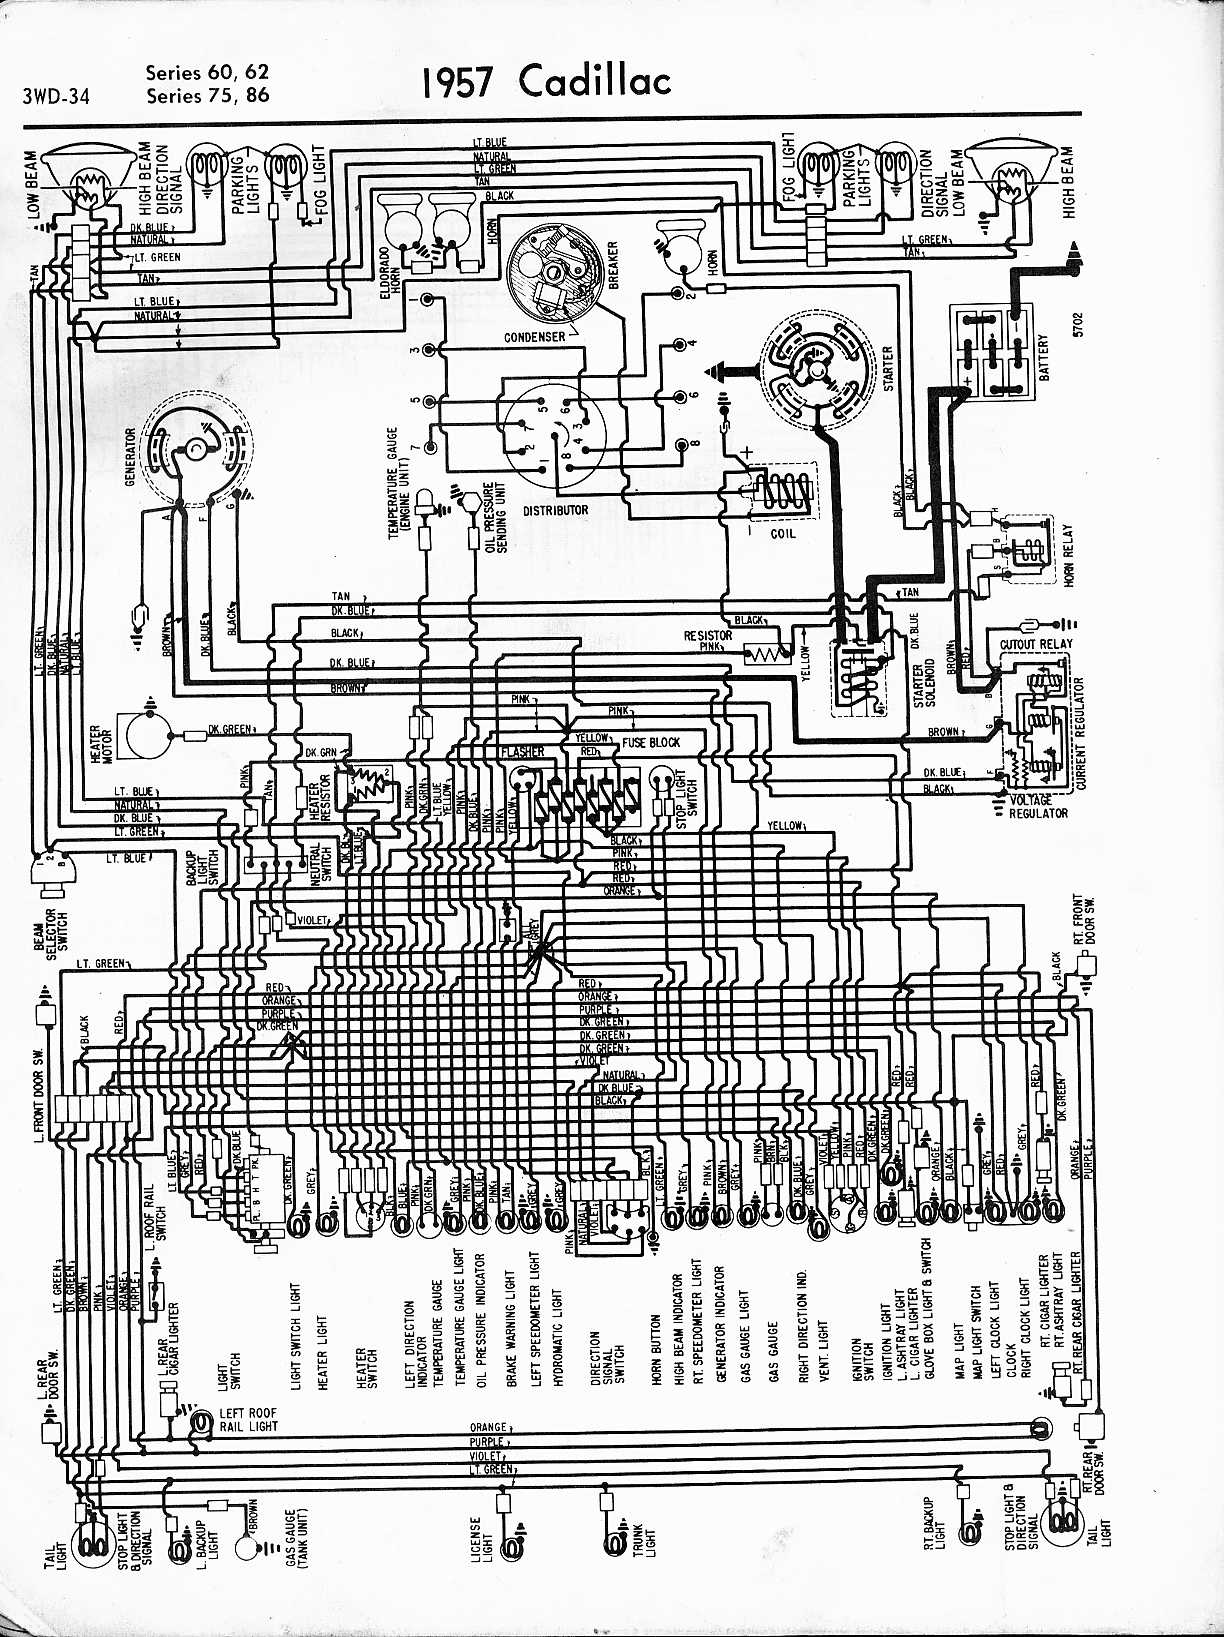 hight resolution of cadillac wiring diagrams 1957 1965 1956 opel wiring diagram 1956 cadillac wiring diagram